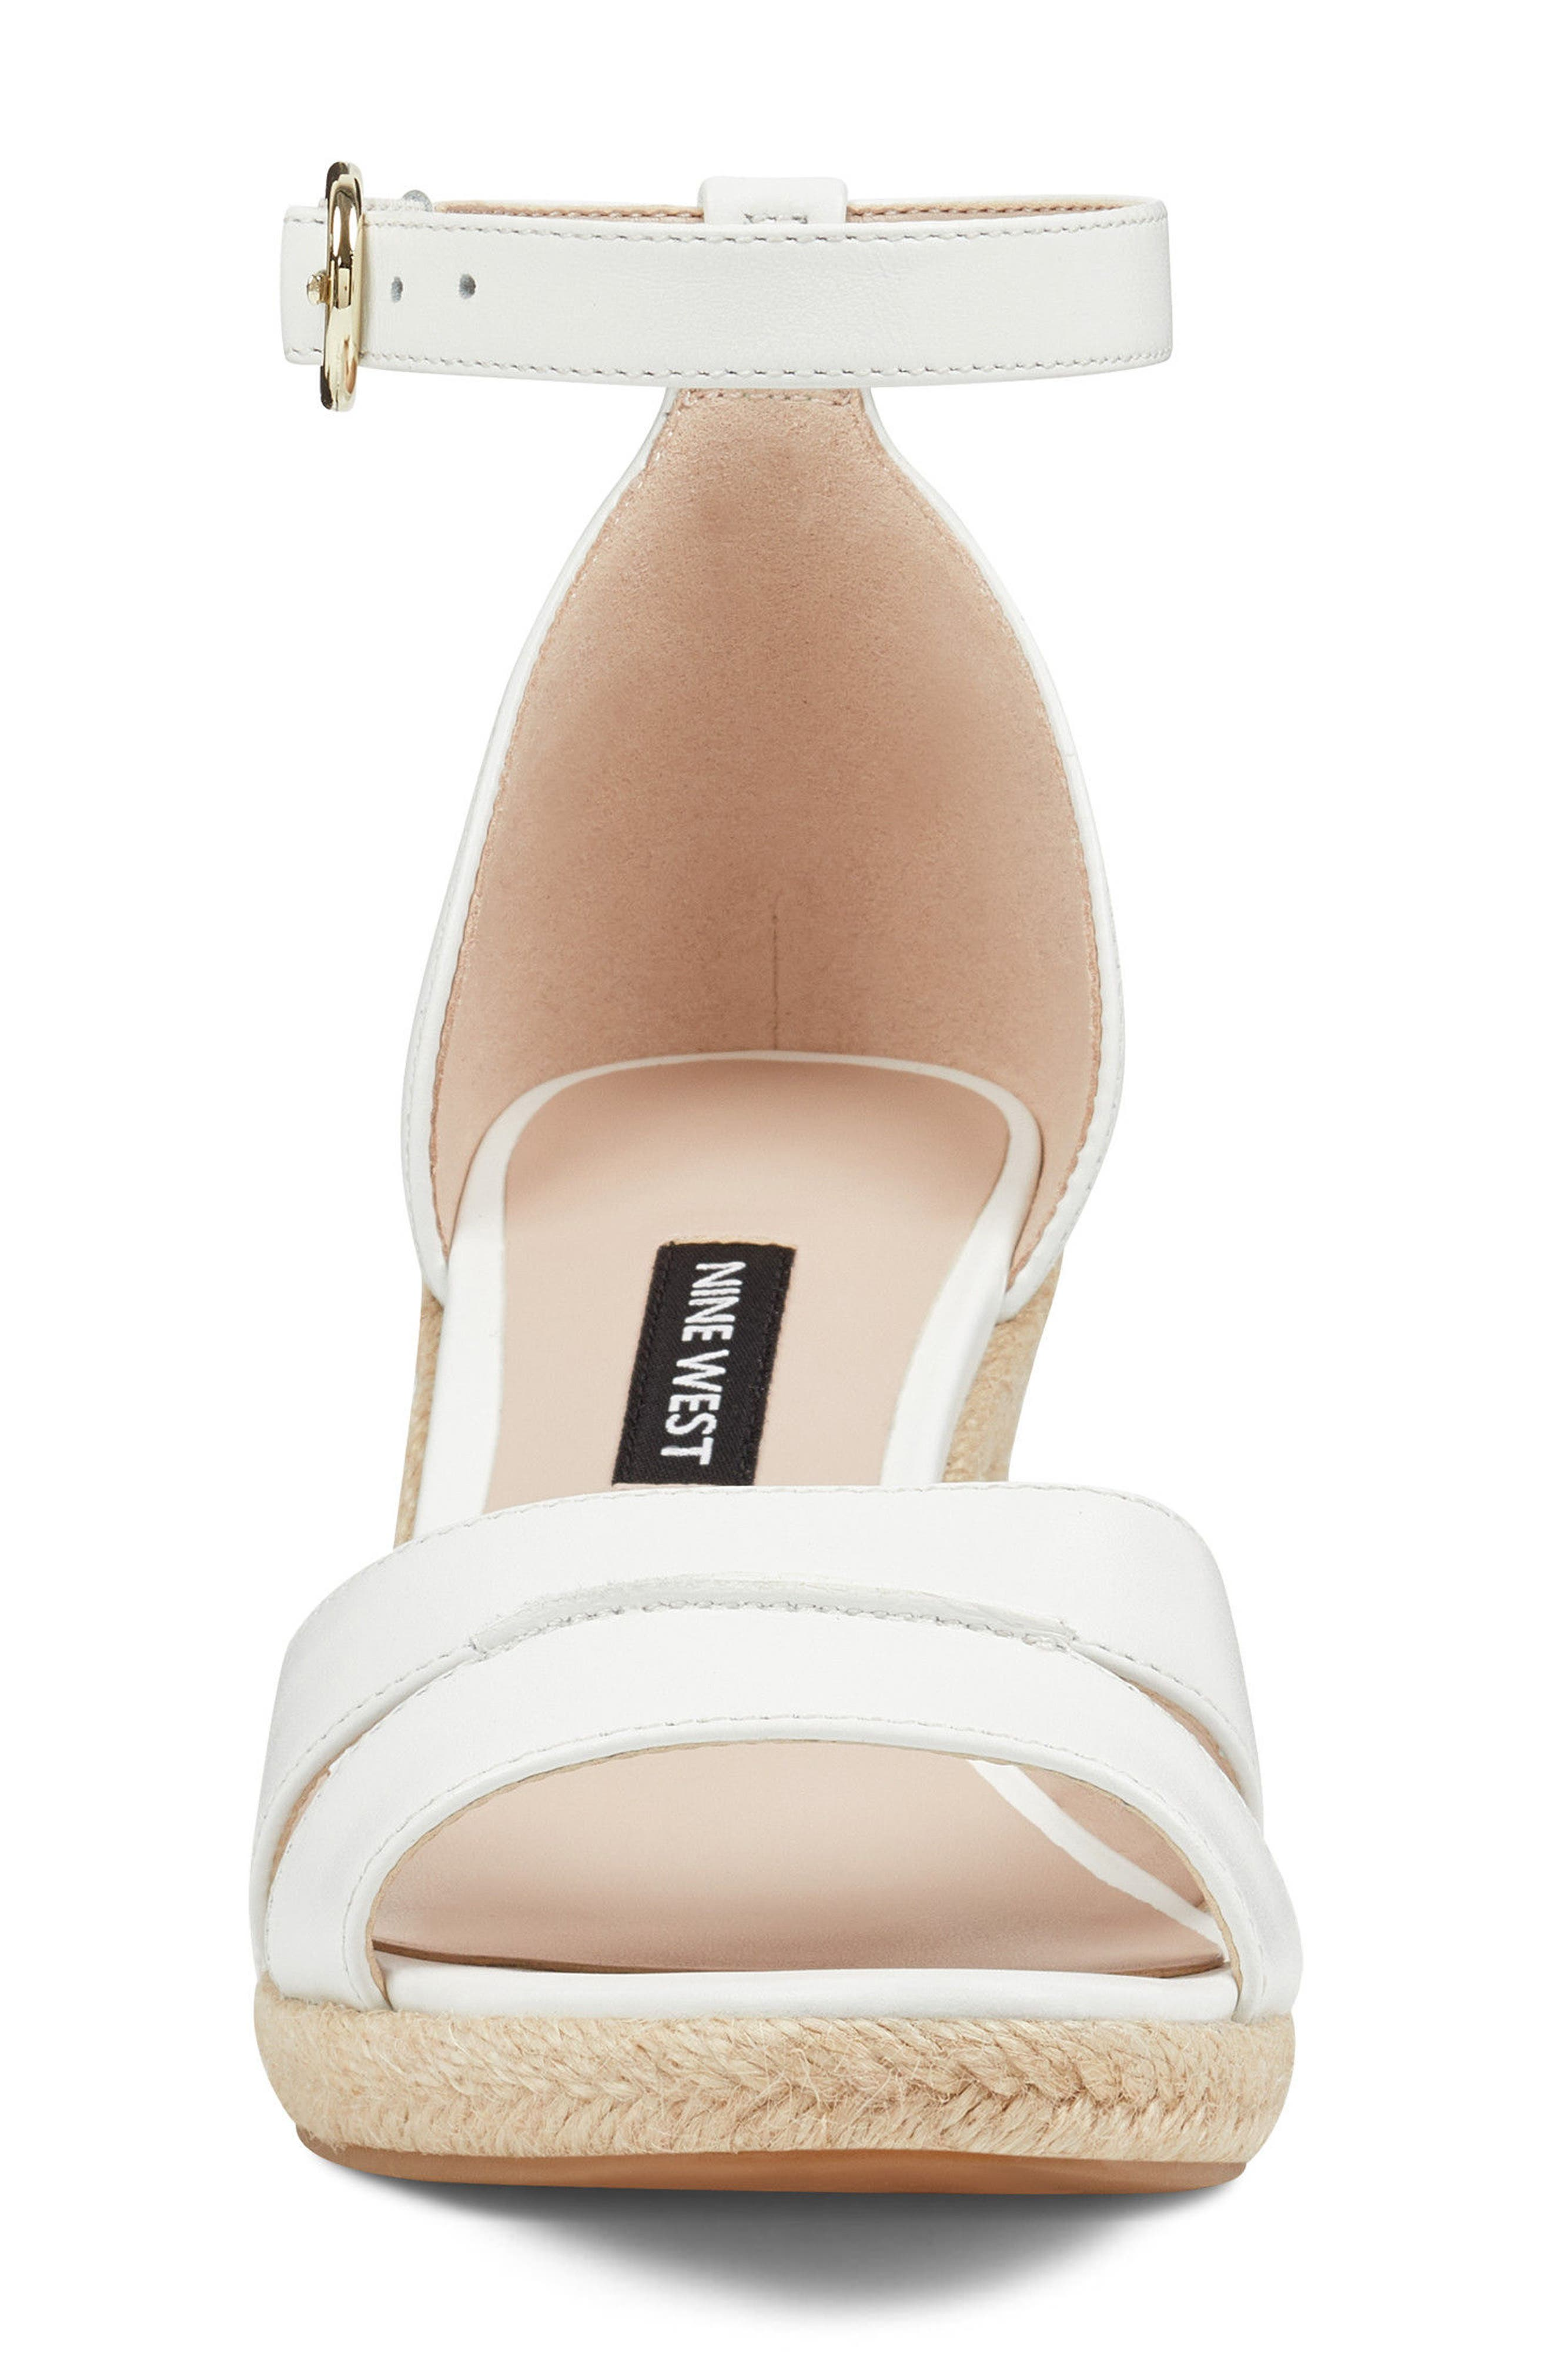 Jeranna Espadrille Wedge Sandal,                             Alternate thumbnail 4, color,                             WHITE LEATHER